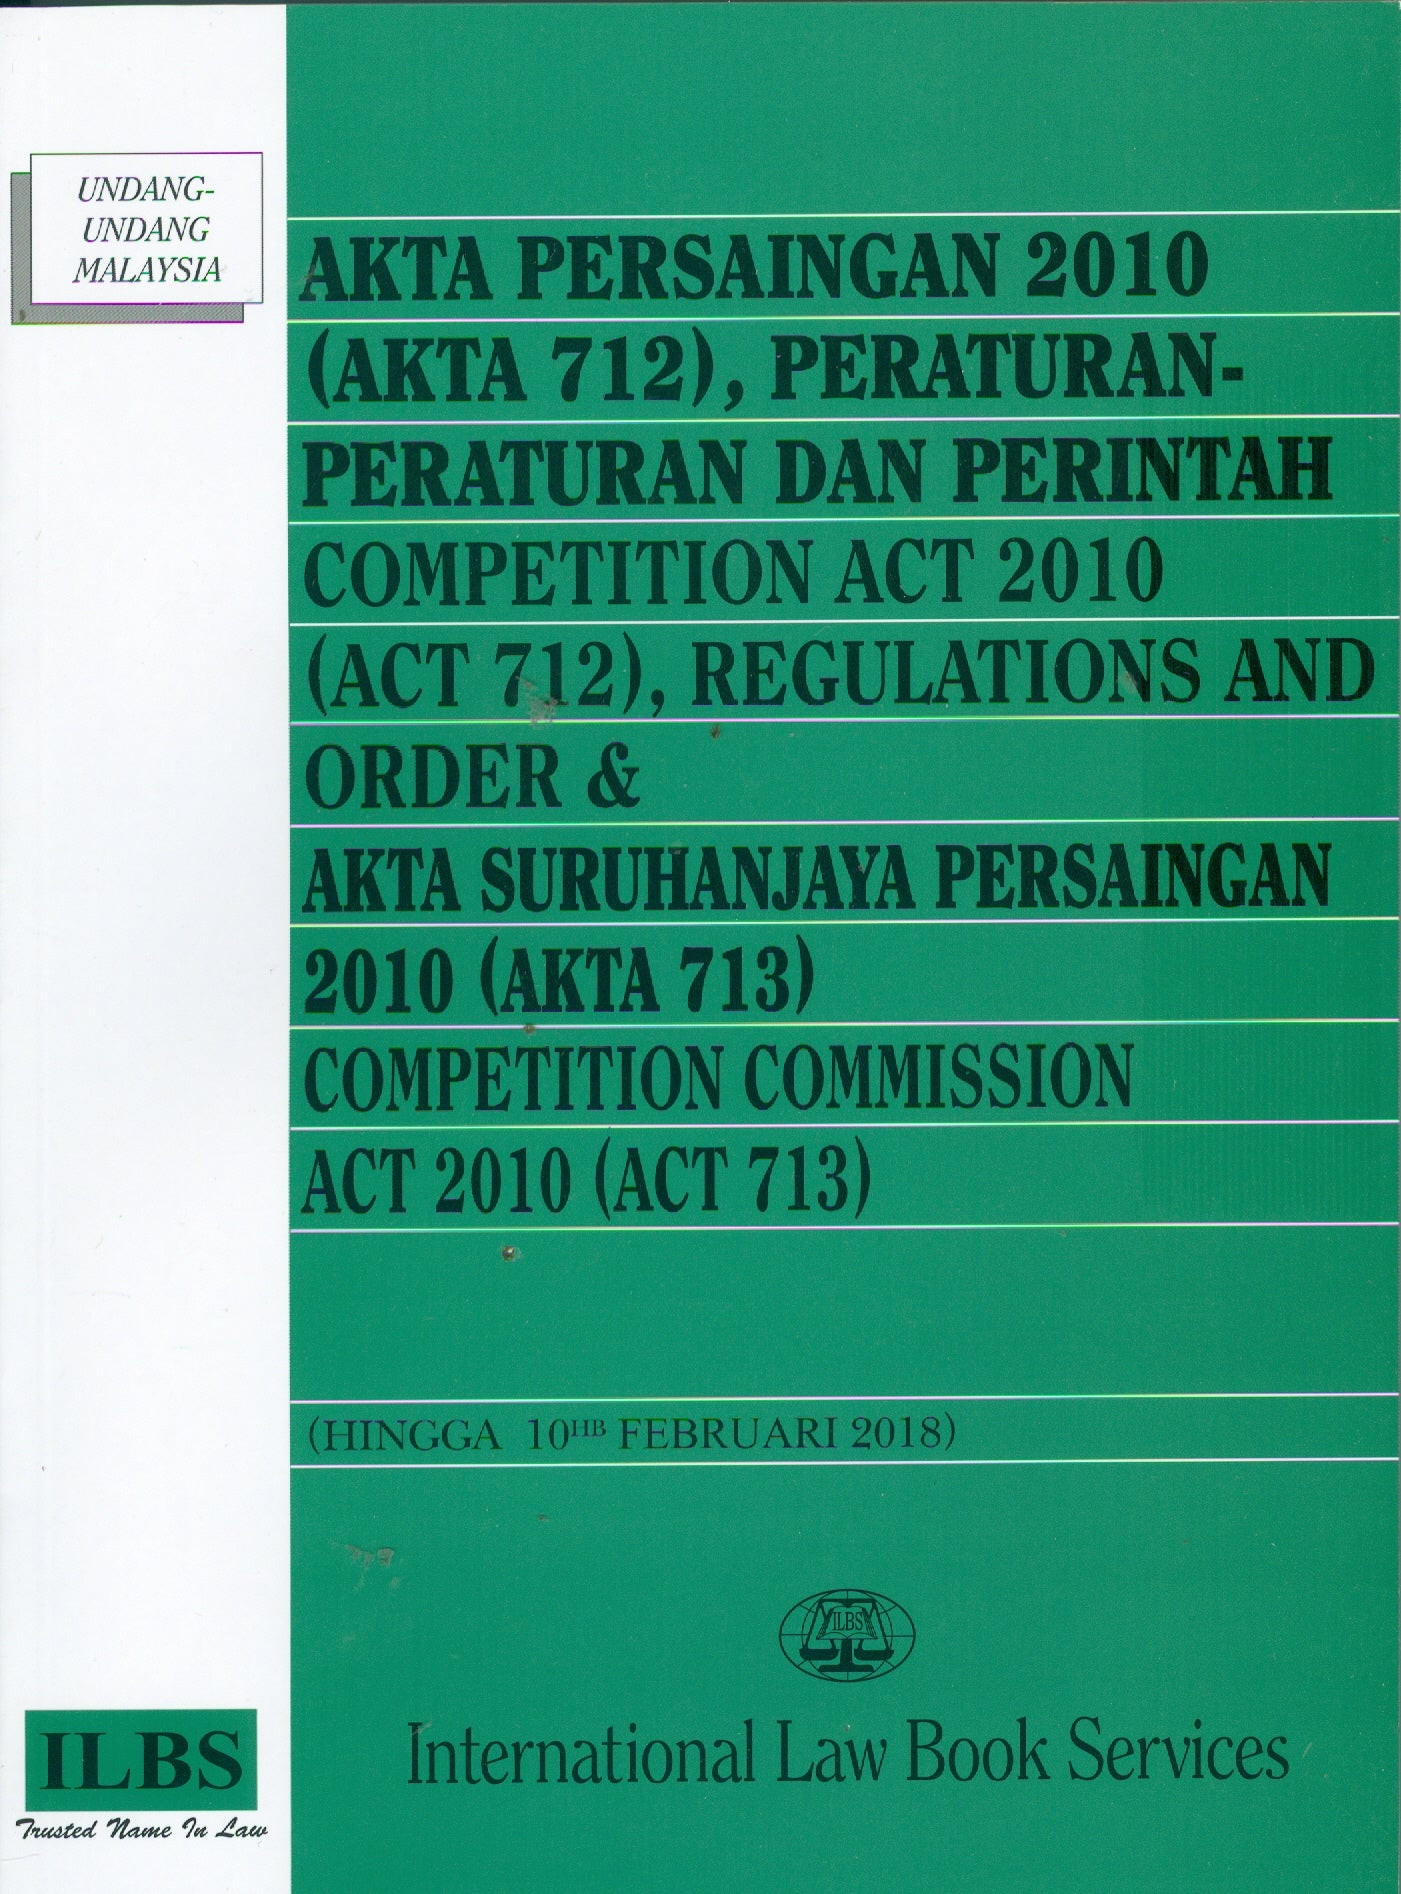 Competition Act 2010 (Act 712)